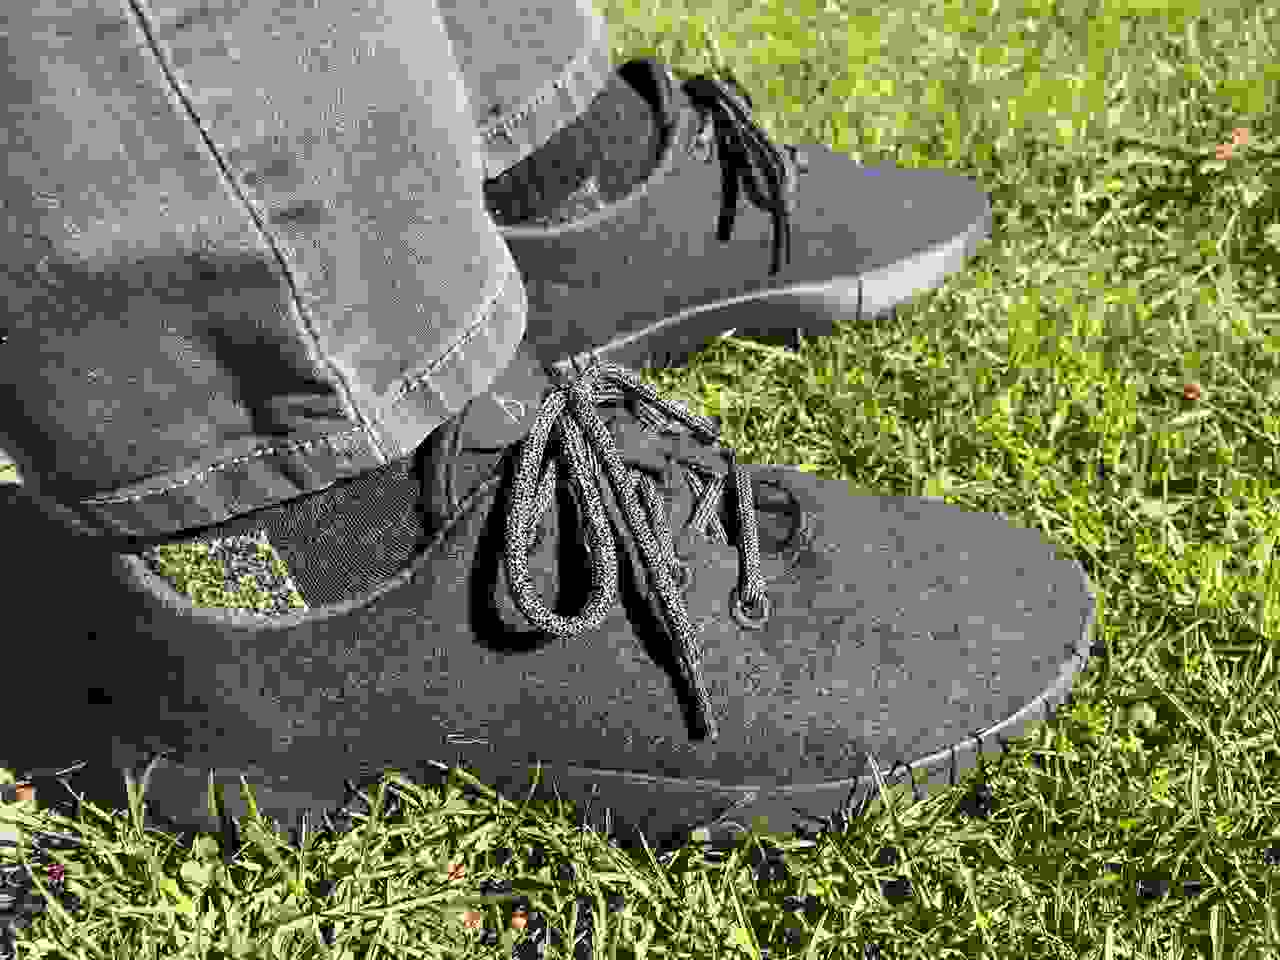 Allbirds lounging in the grass